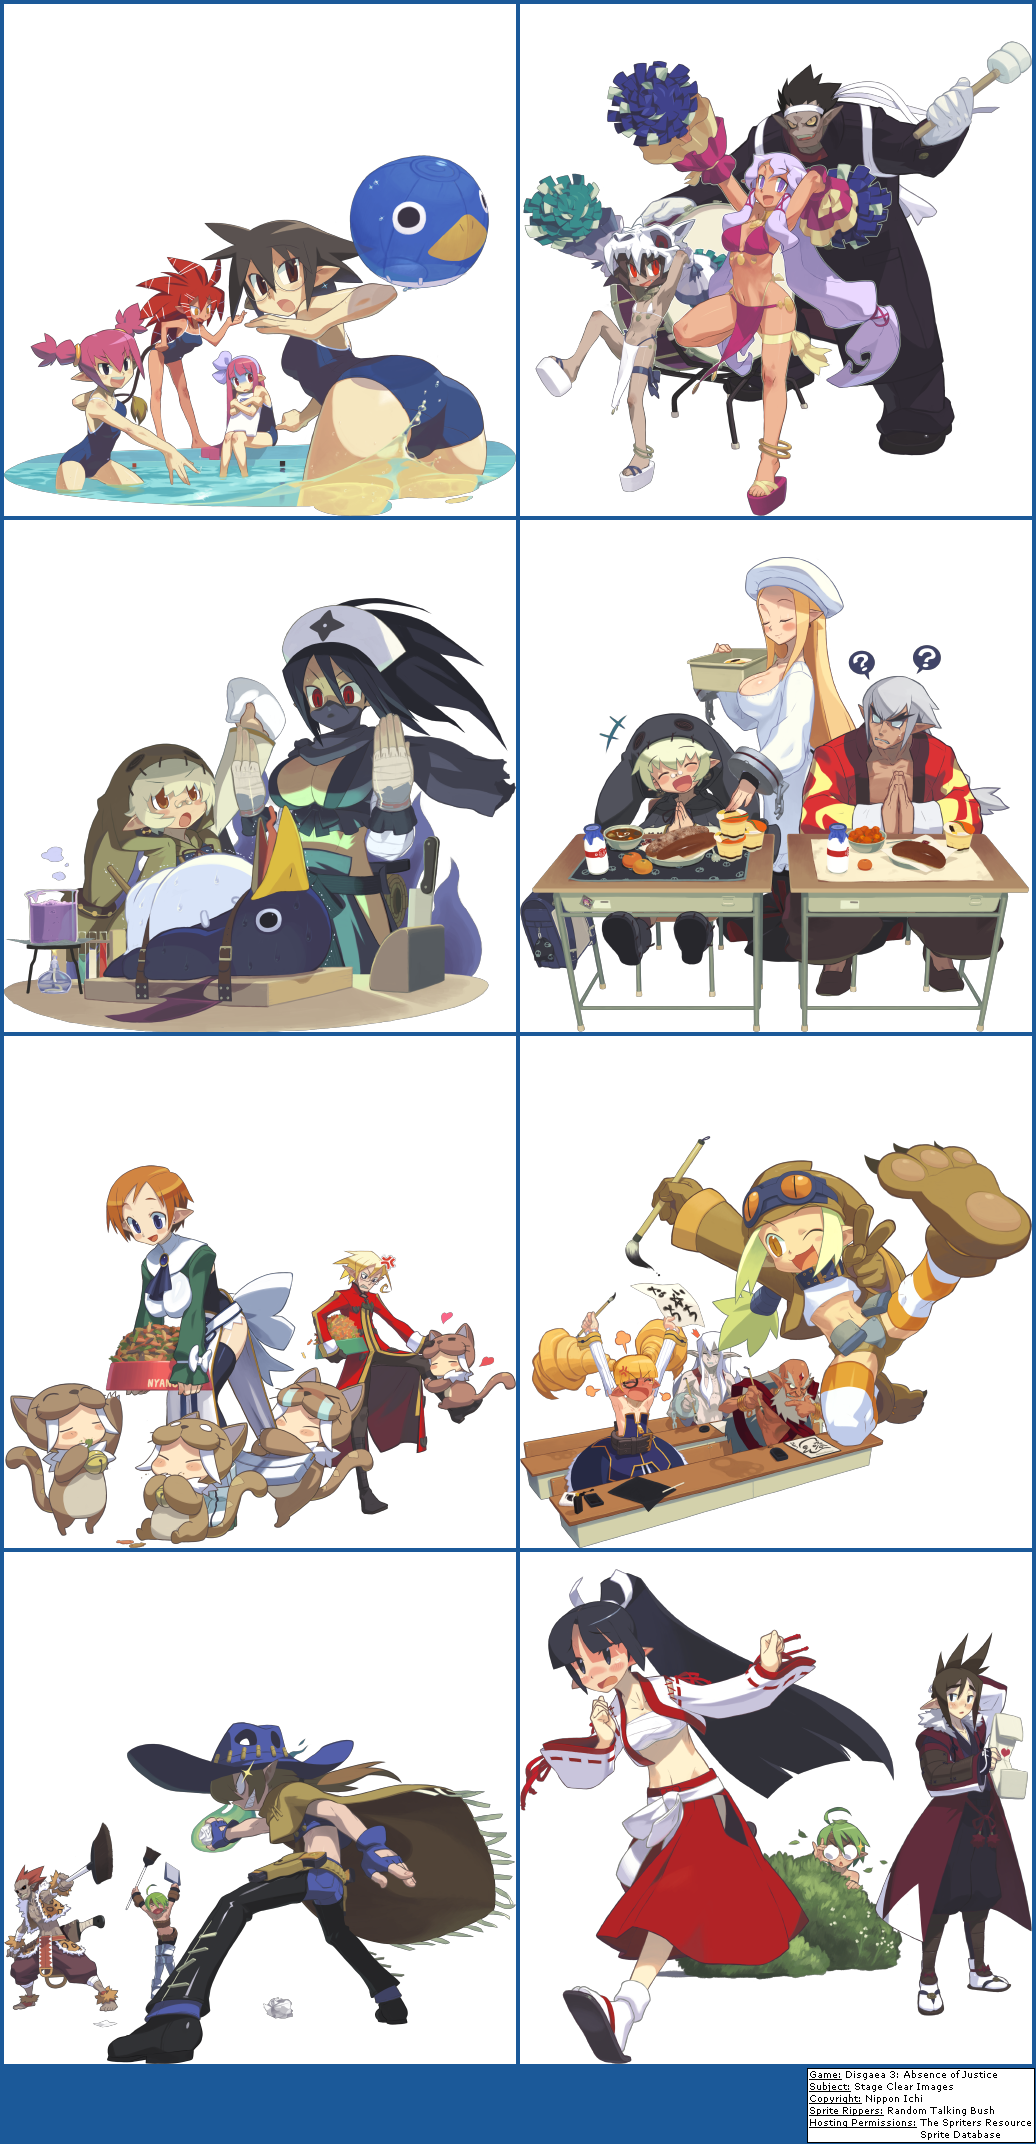 Disgaea 3 Absence Of Justice Stage Clear Images Disgaea Character Design Anime